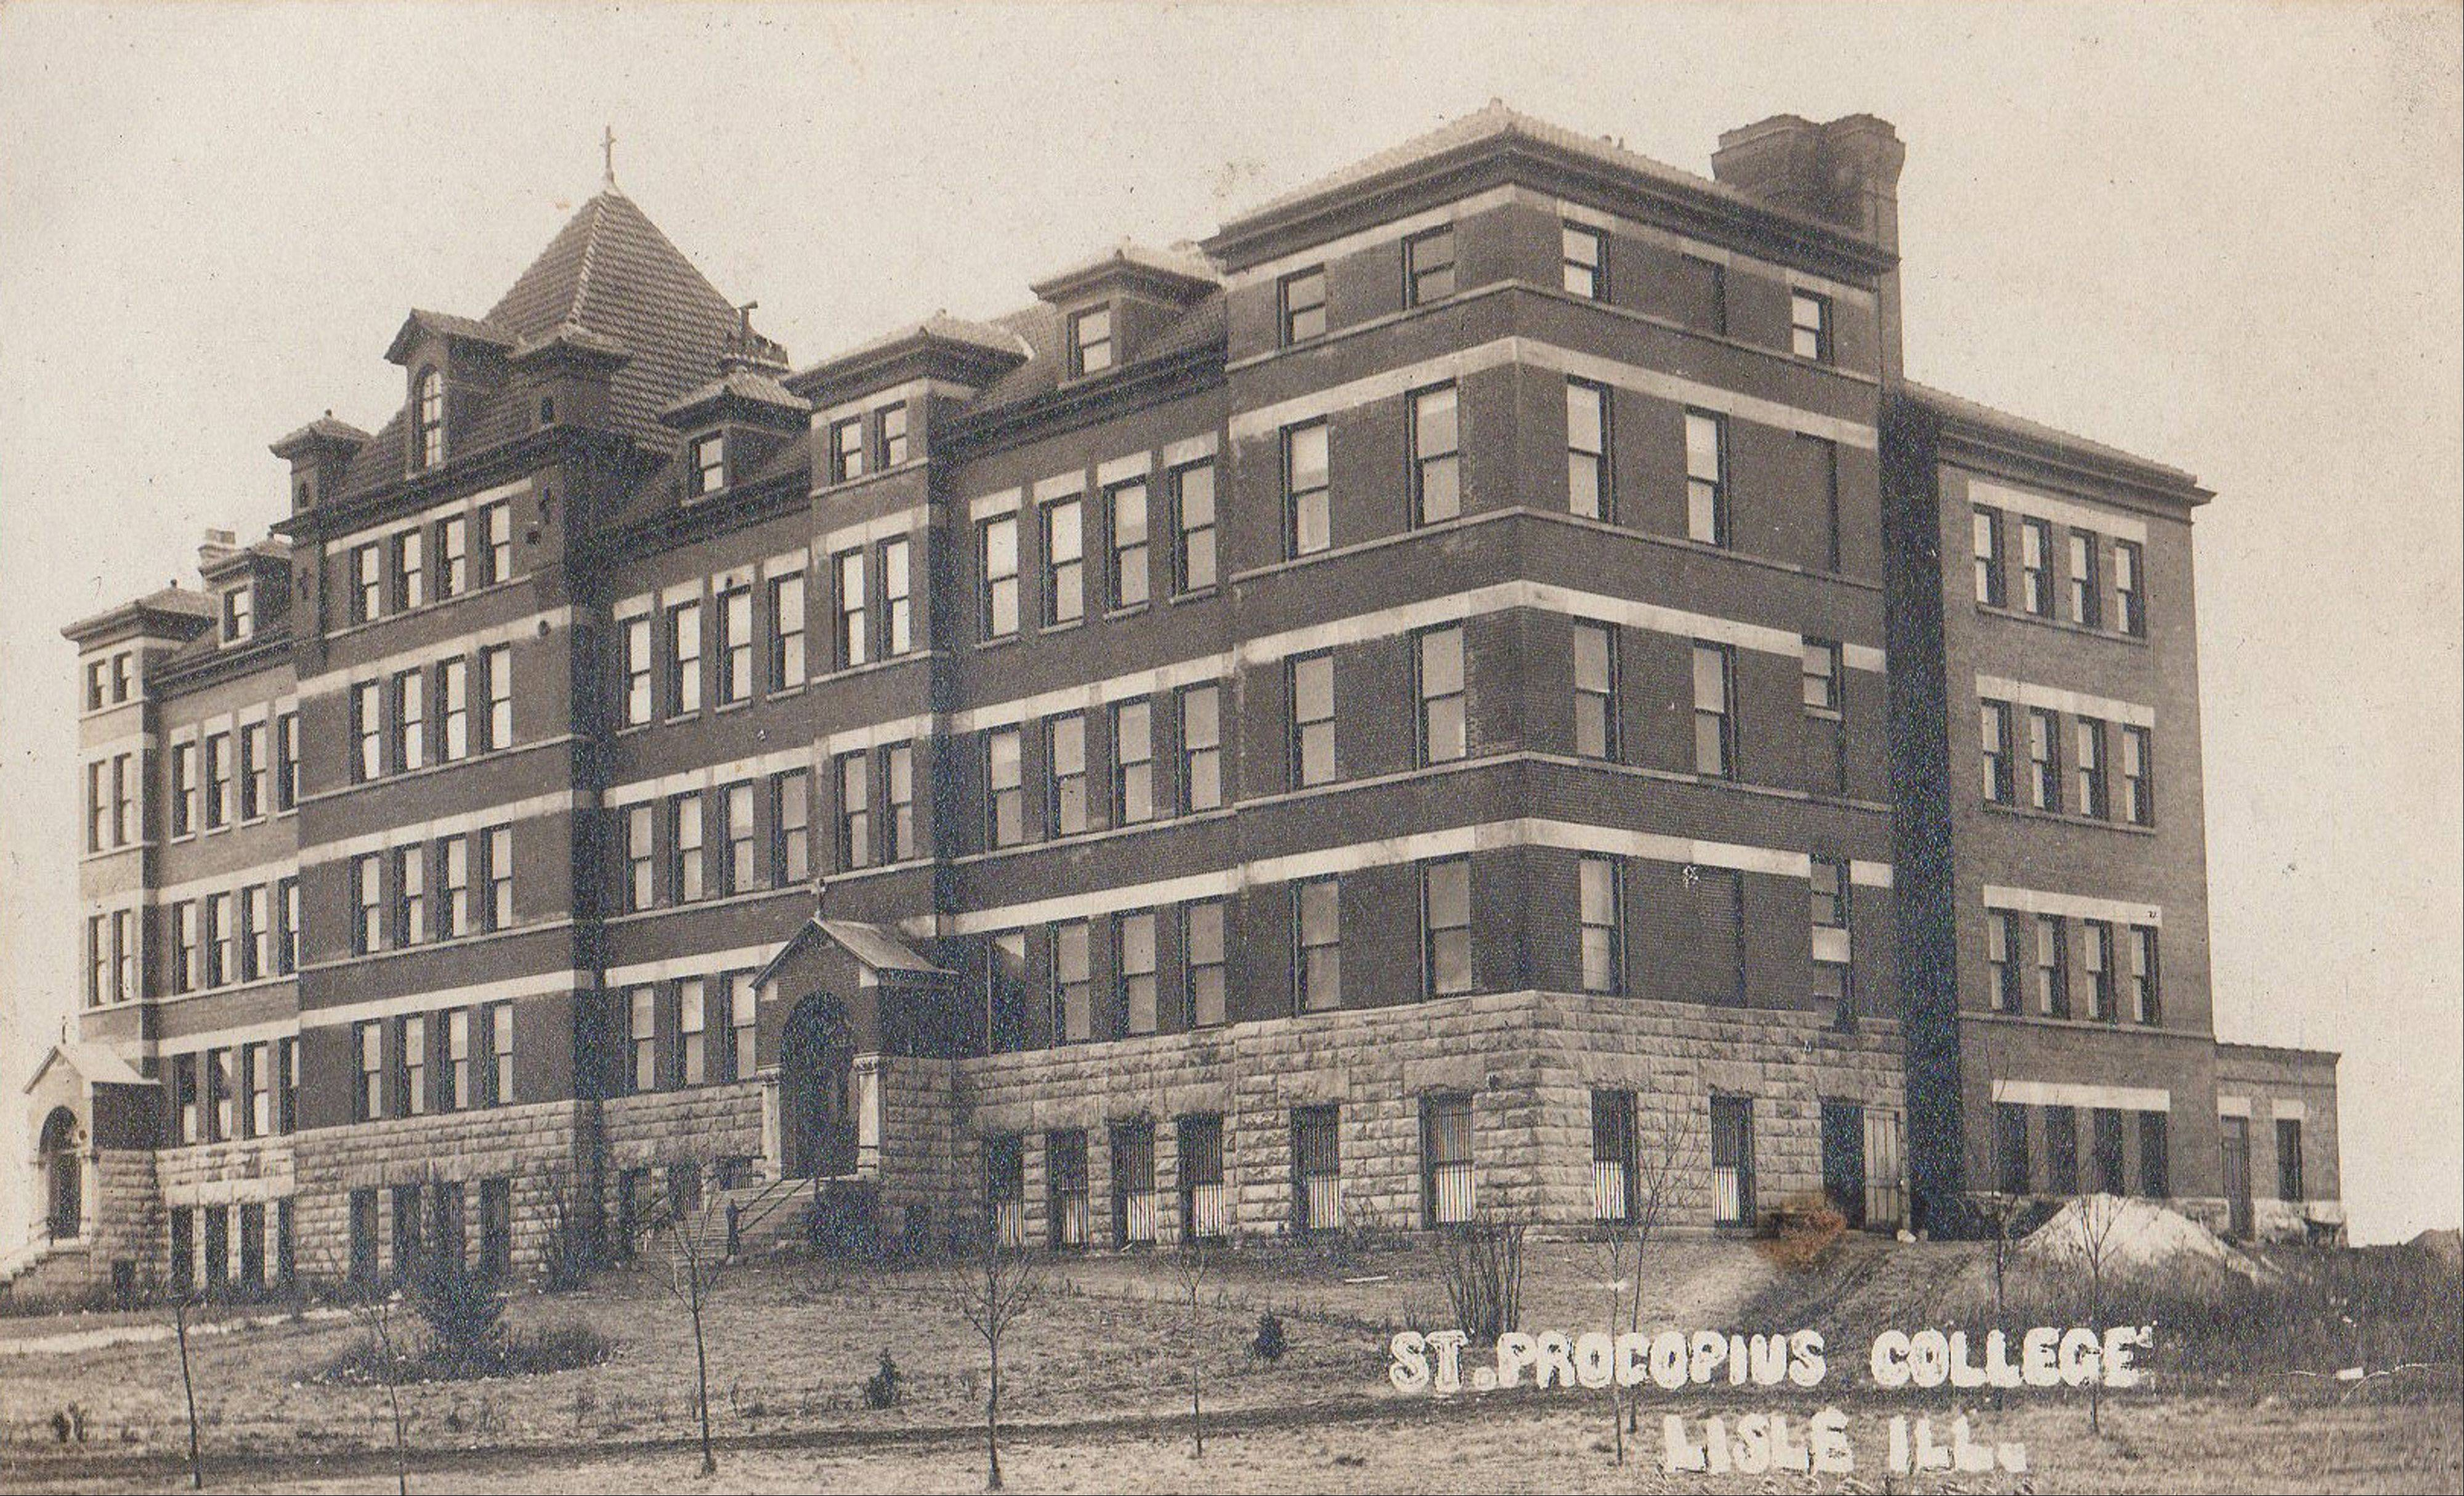 A postcard of Benedictine Hall, the first building on the St. Procopius College campus in Lisle, preserves a bit of history as the building has met the wrecking ball.